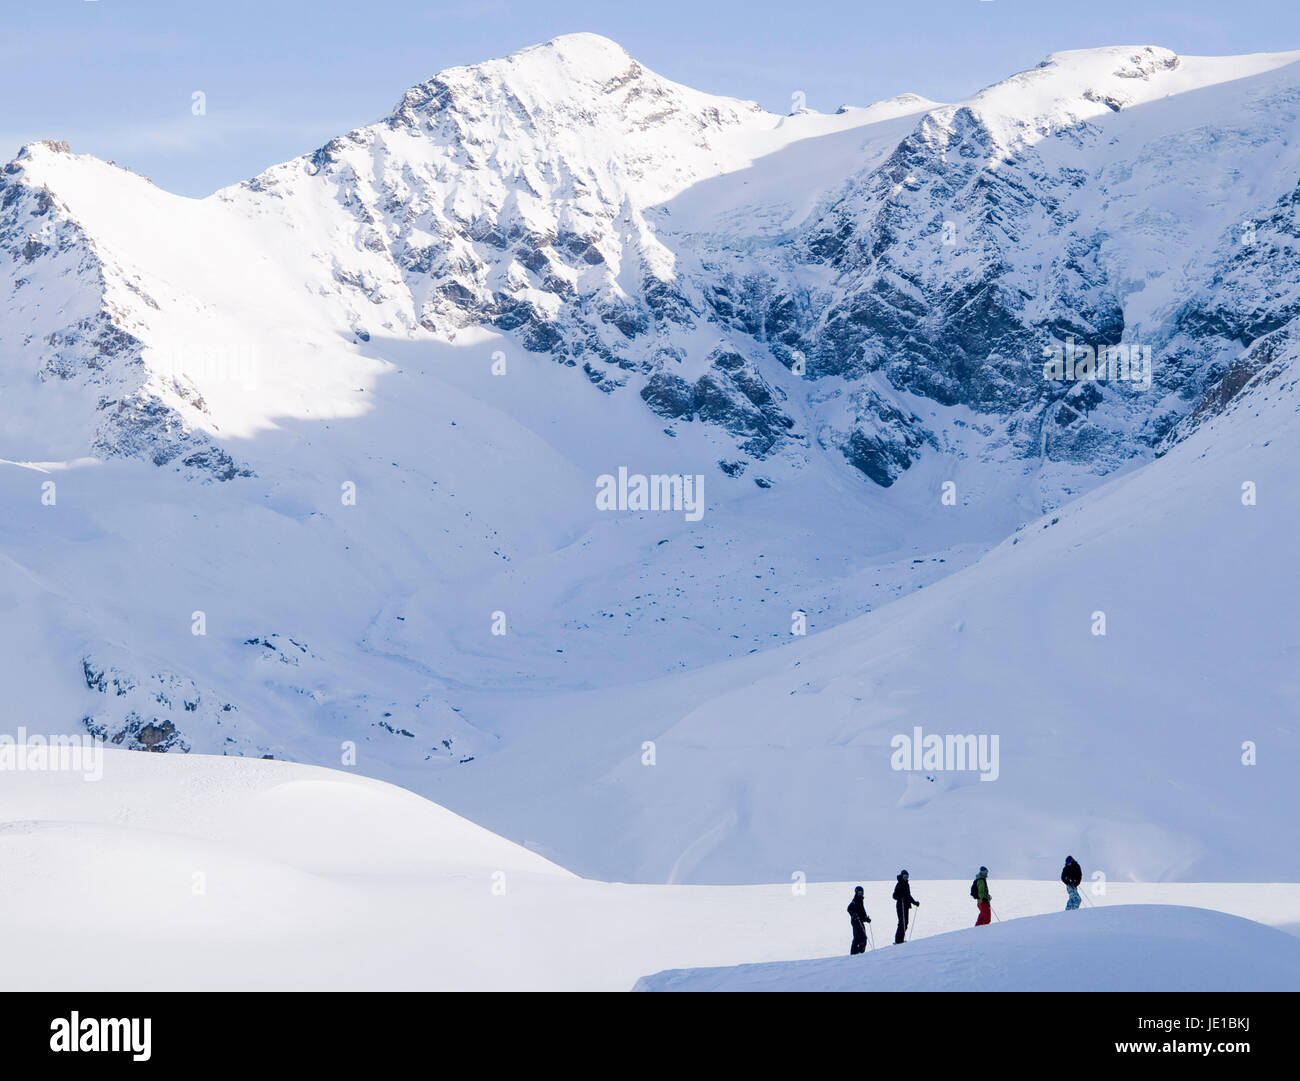 In the mountains, La Rosiere, France - Stock Image